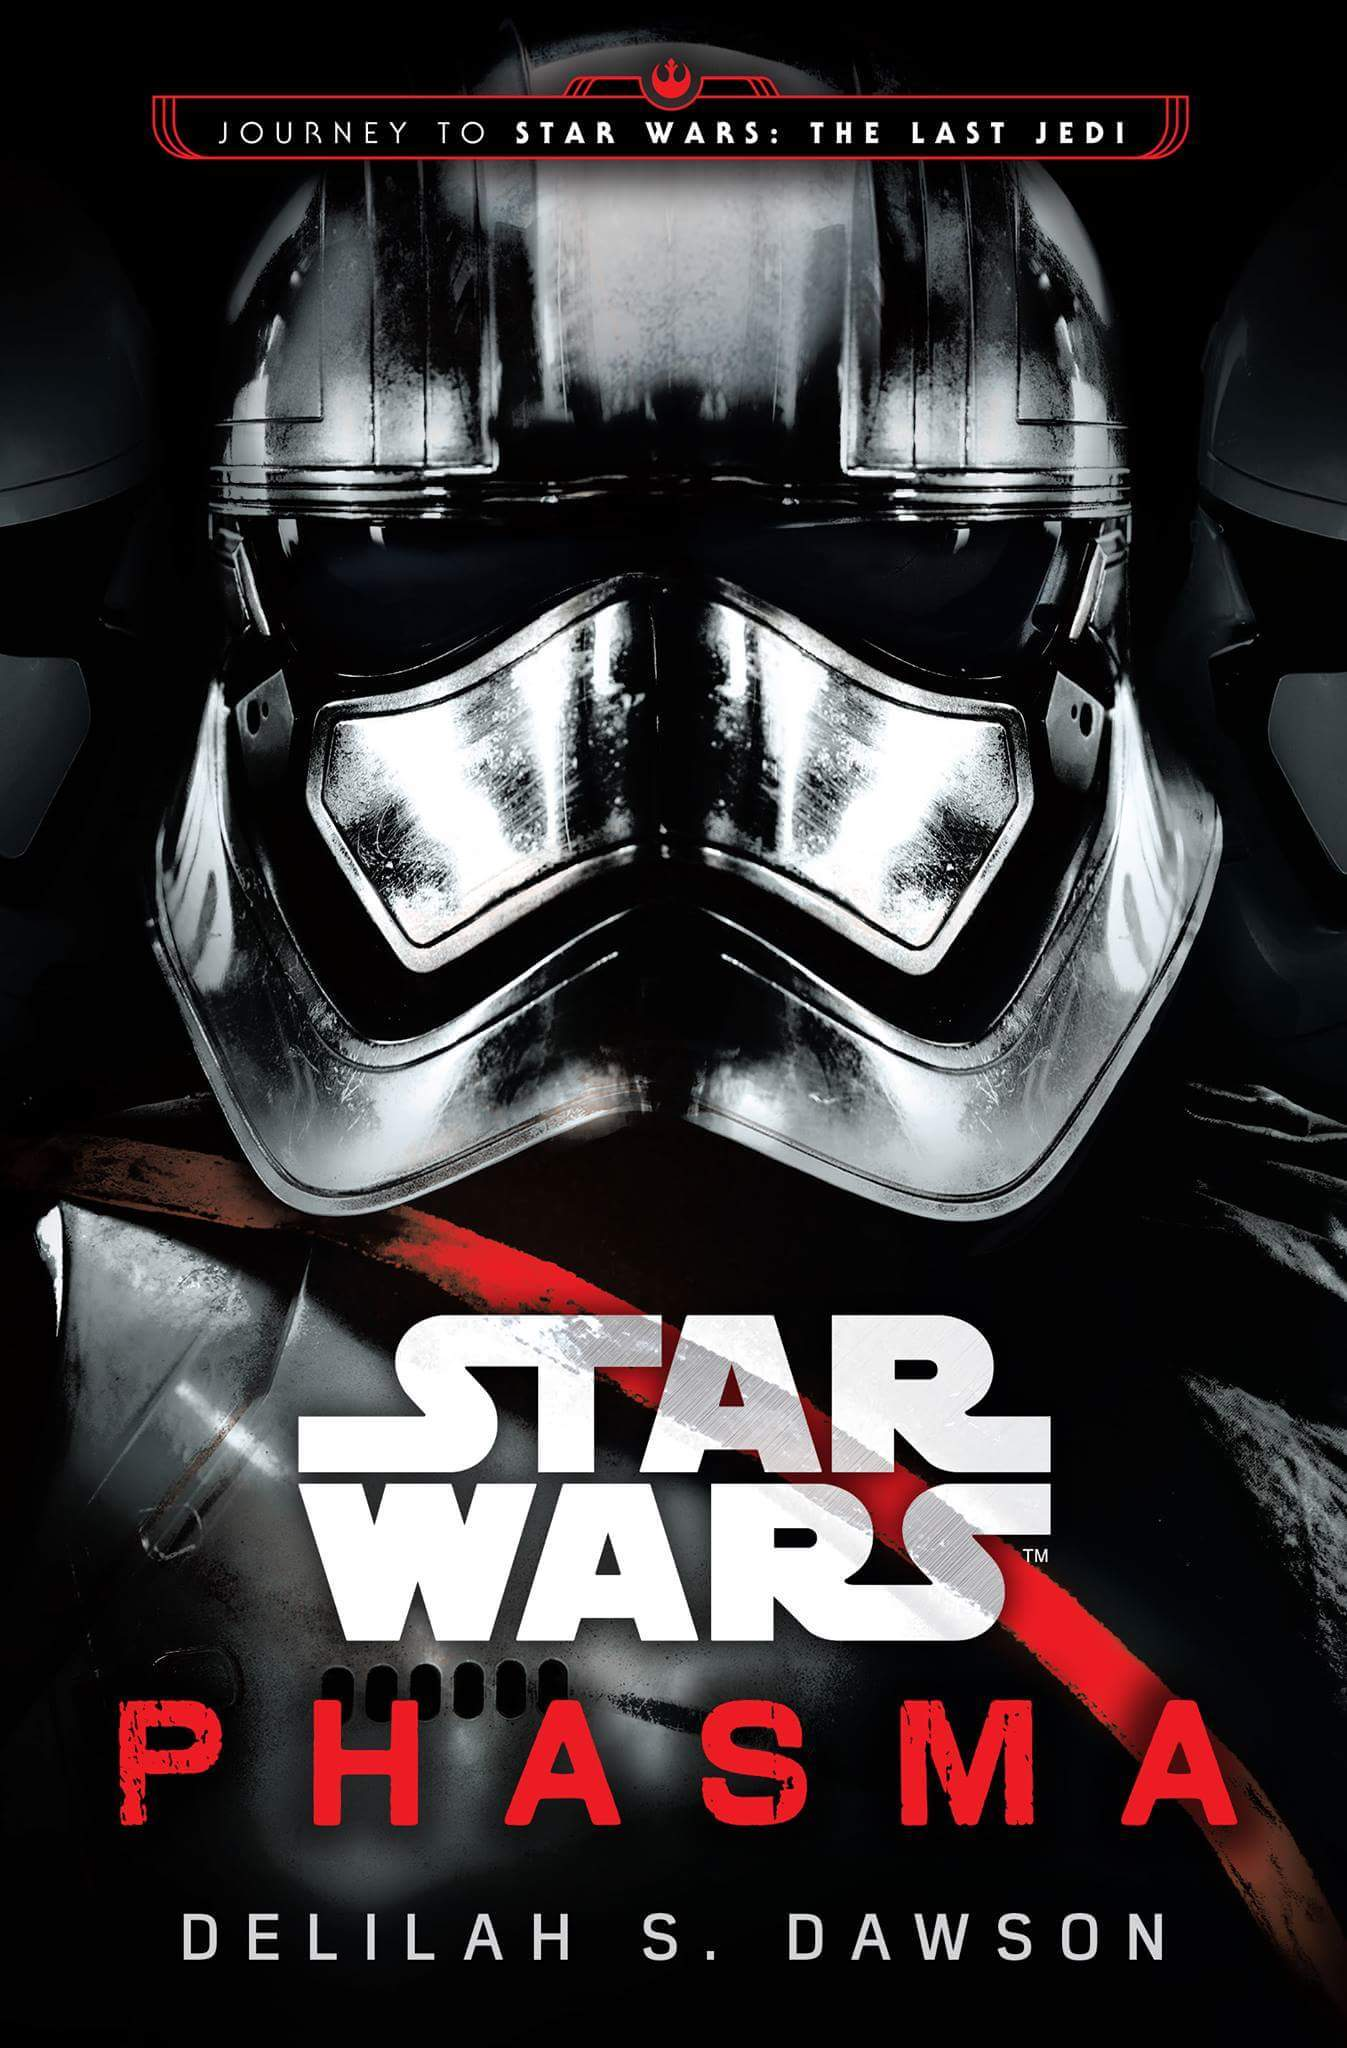 Star Wars: Phasma artwork